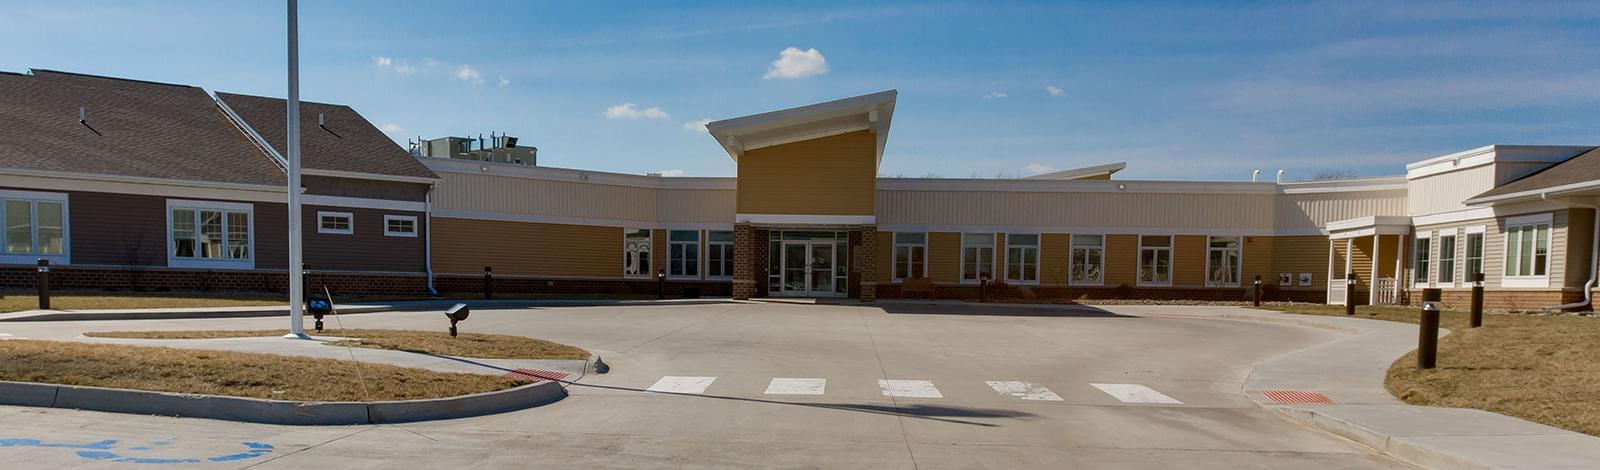 Photo of Rowley Masonic Community, Assisted Living, Nursing Home, Independent Living, CCRC, Perry, IA 2